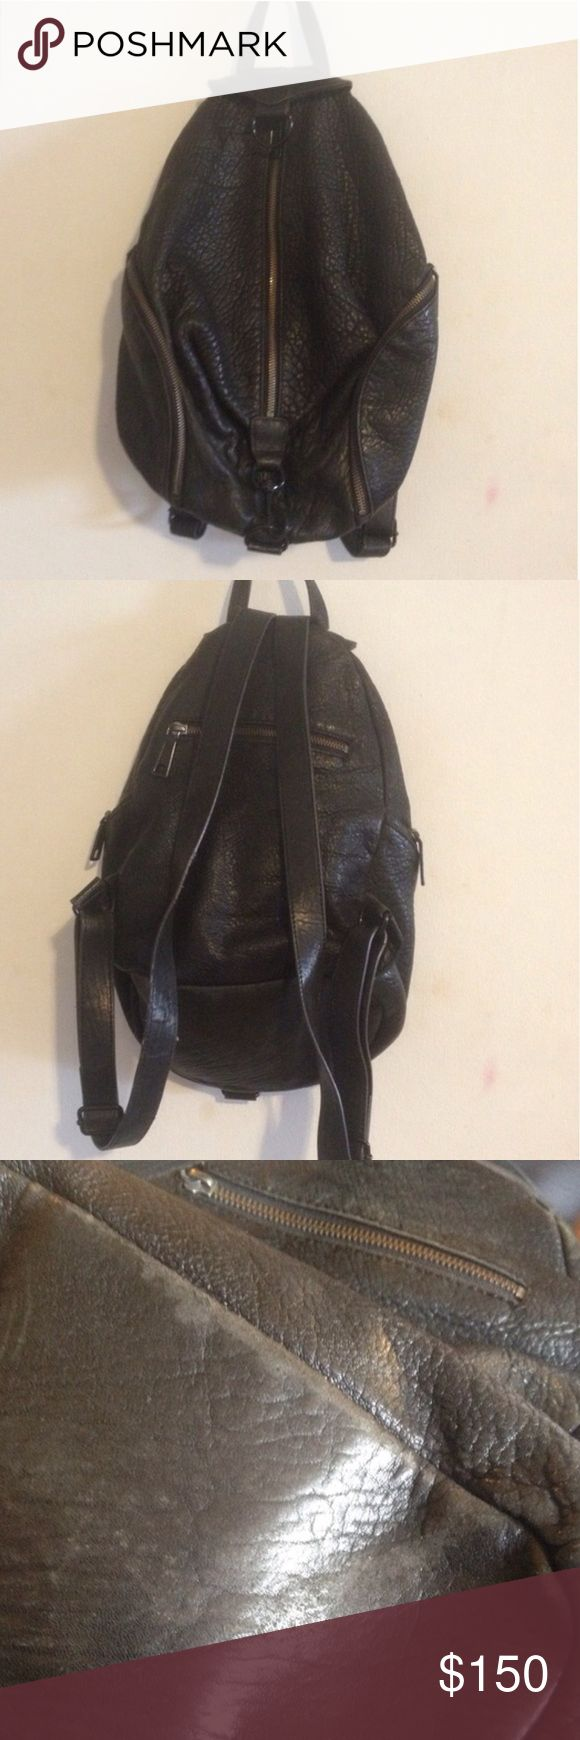 REBECCA MINKOFF JULIAN Backpack Pre-loved but plenty of life left in this beauty, I LOVE her but I just don't reach for her as much anymore.  Give her a good home 💜 Some wear to leather ( I honestly love the worn leather feel, it's so soft!) The interior is still gorgeous (see last image)  if you'd like more photos, just ask 😊 🚫Sorry, NO TRADES🚫 Rebecca Minkoff Bags Backpacks